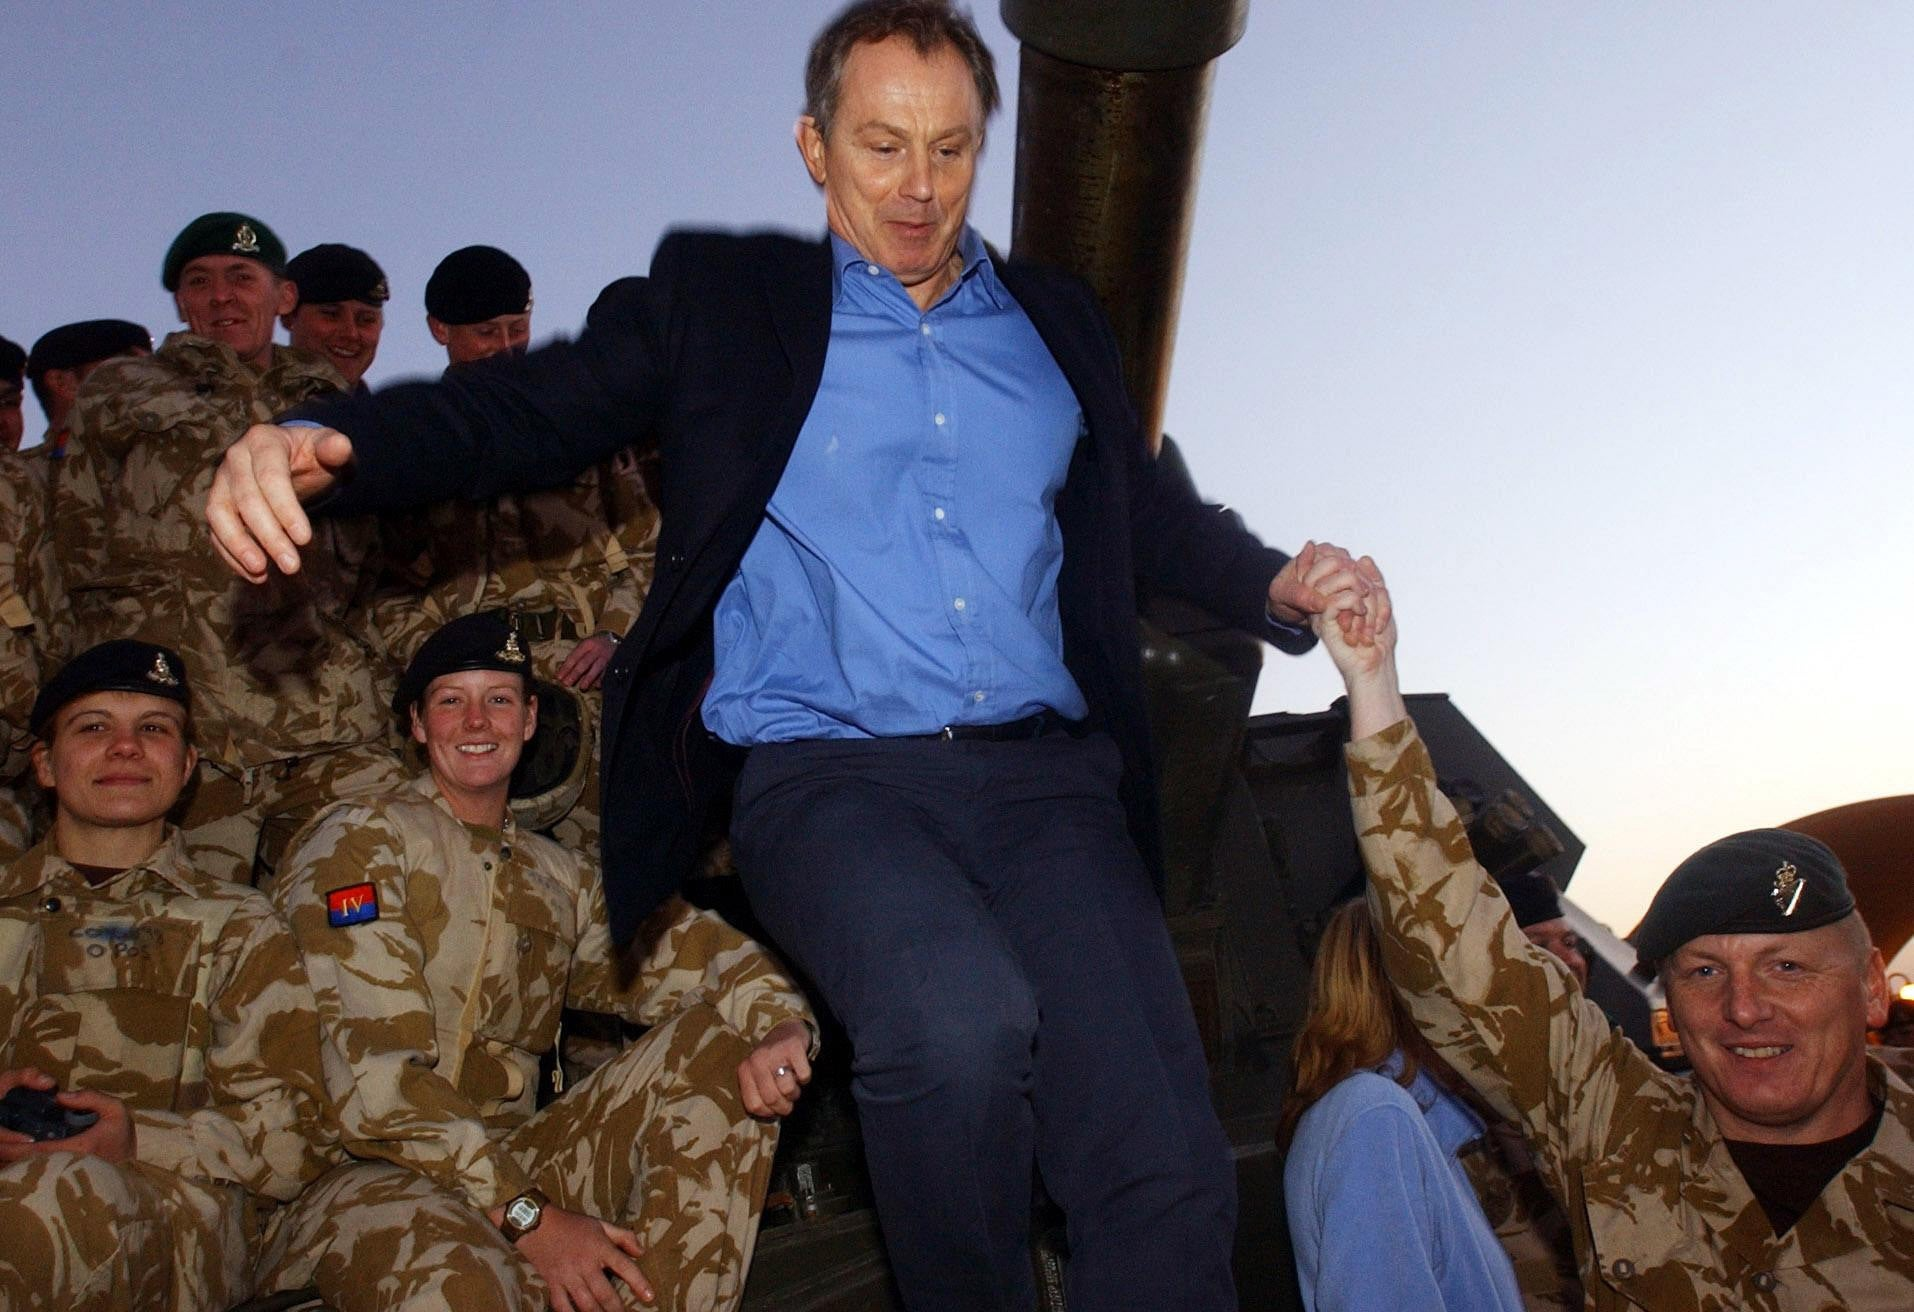 Tony Blair thinks many millions of Muslims are 'fundamentally incompatible with the modern world'